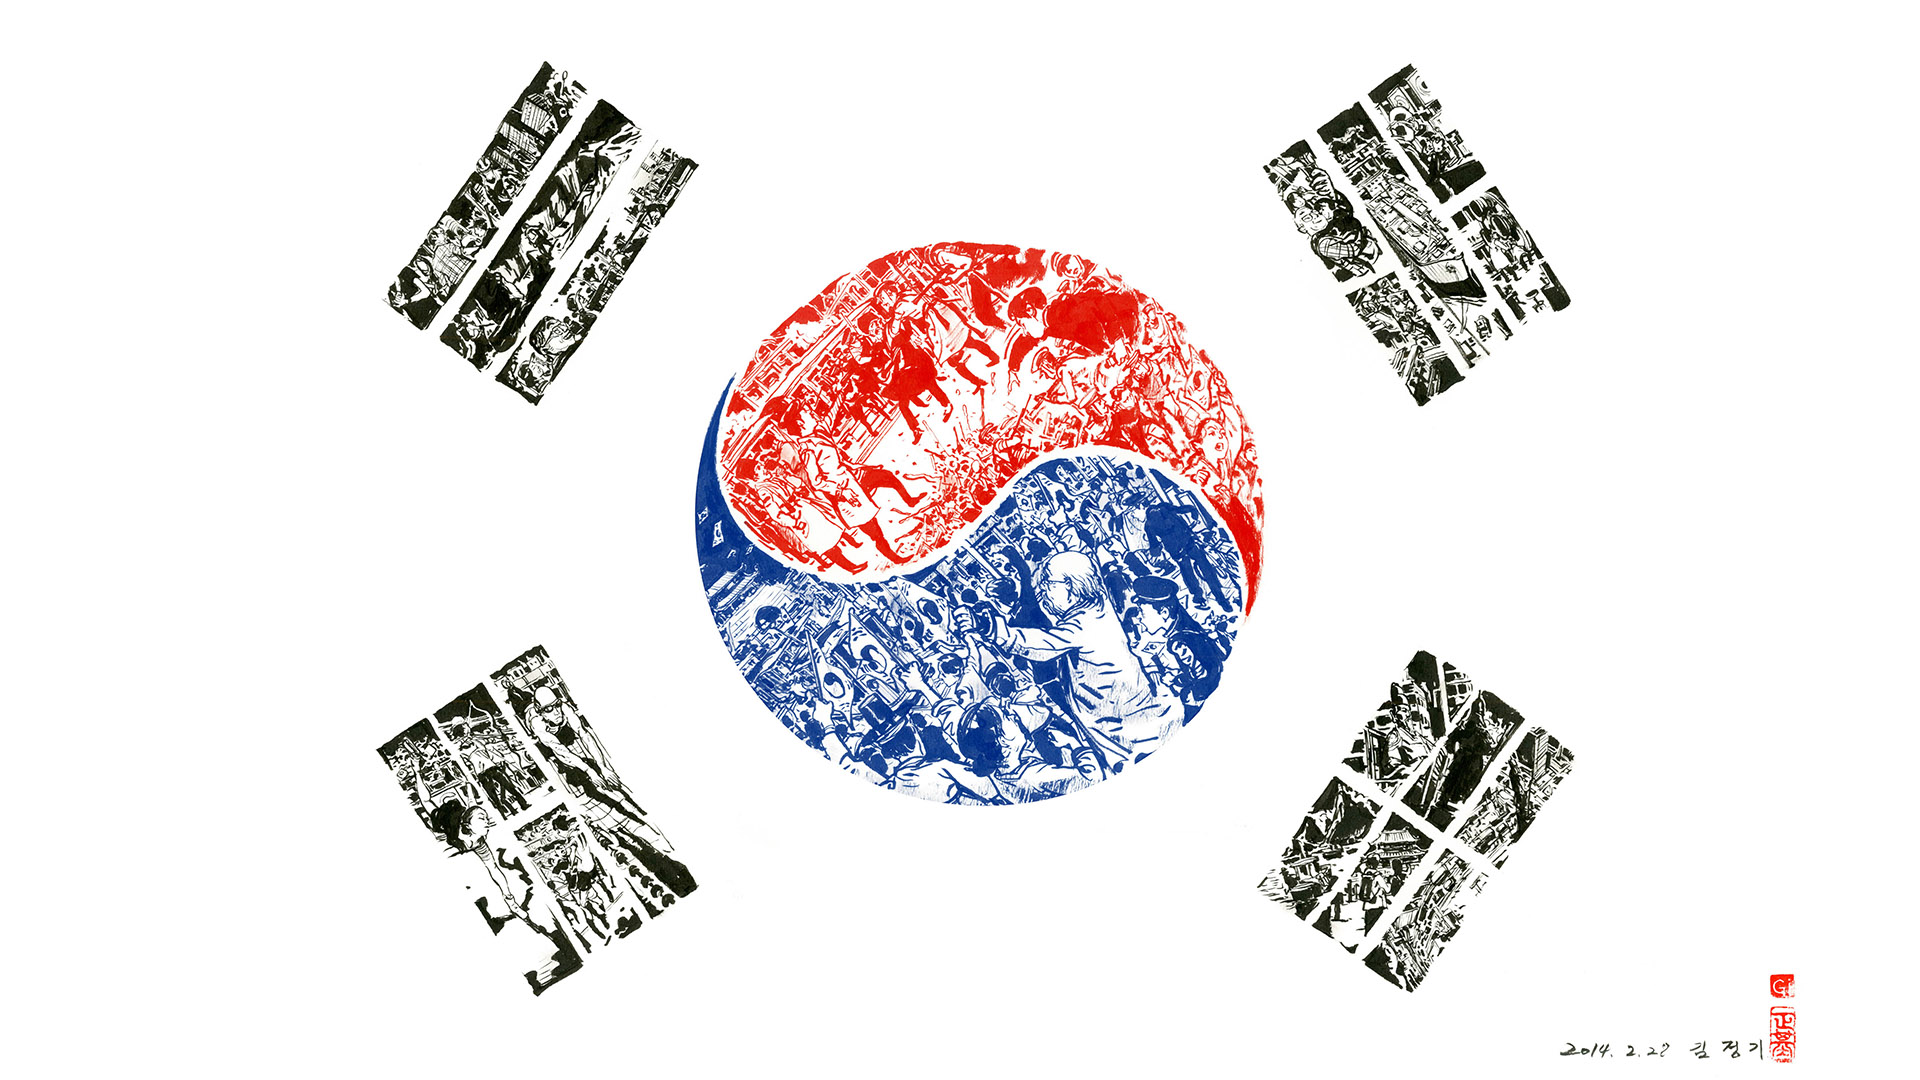 Korean Flag by Kim Jung Gi